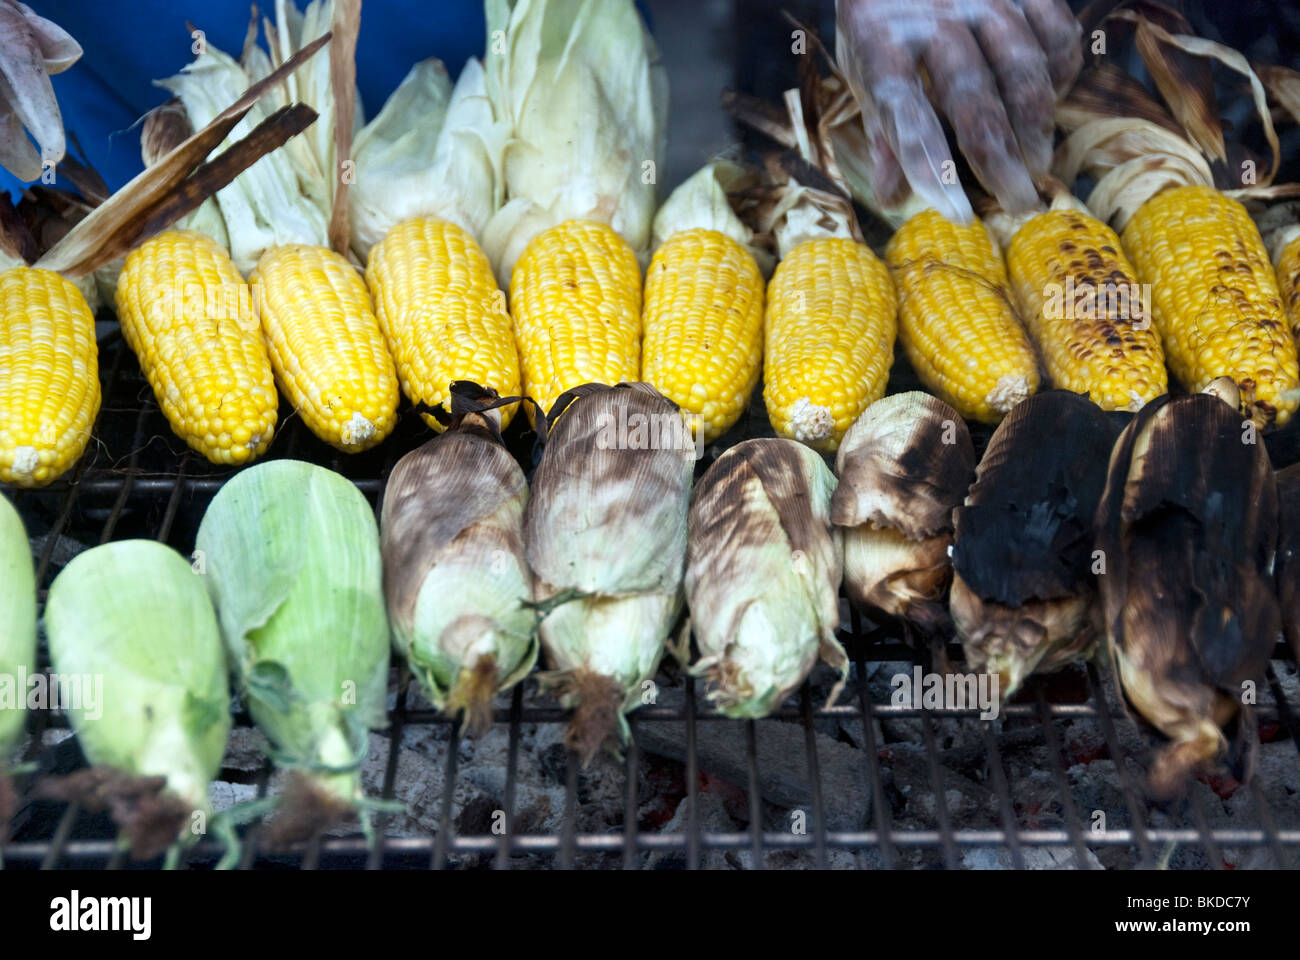 beautiful ears of corn grilling over charcoal fire on Ninth Avenue at New York's 9th Ninth Avenue International - Stock Image